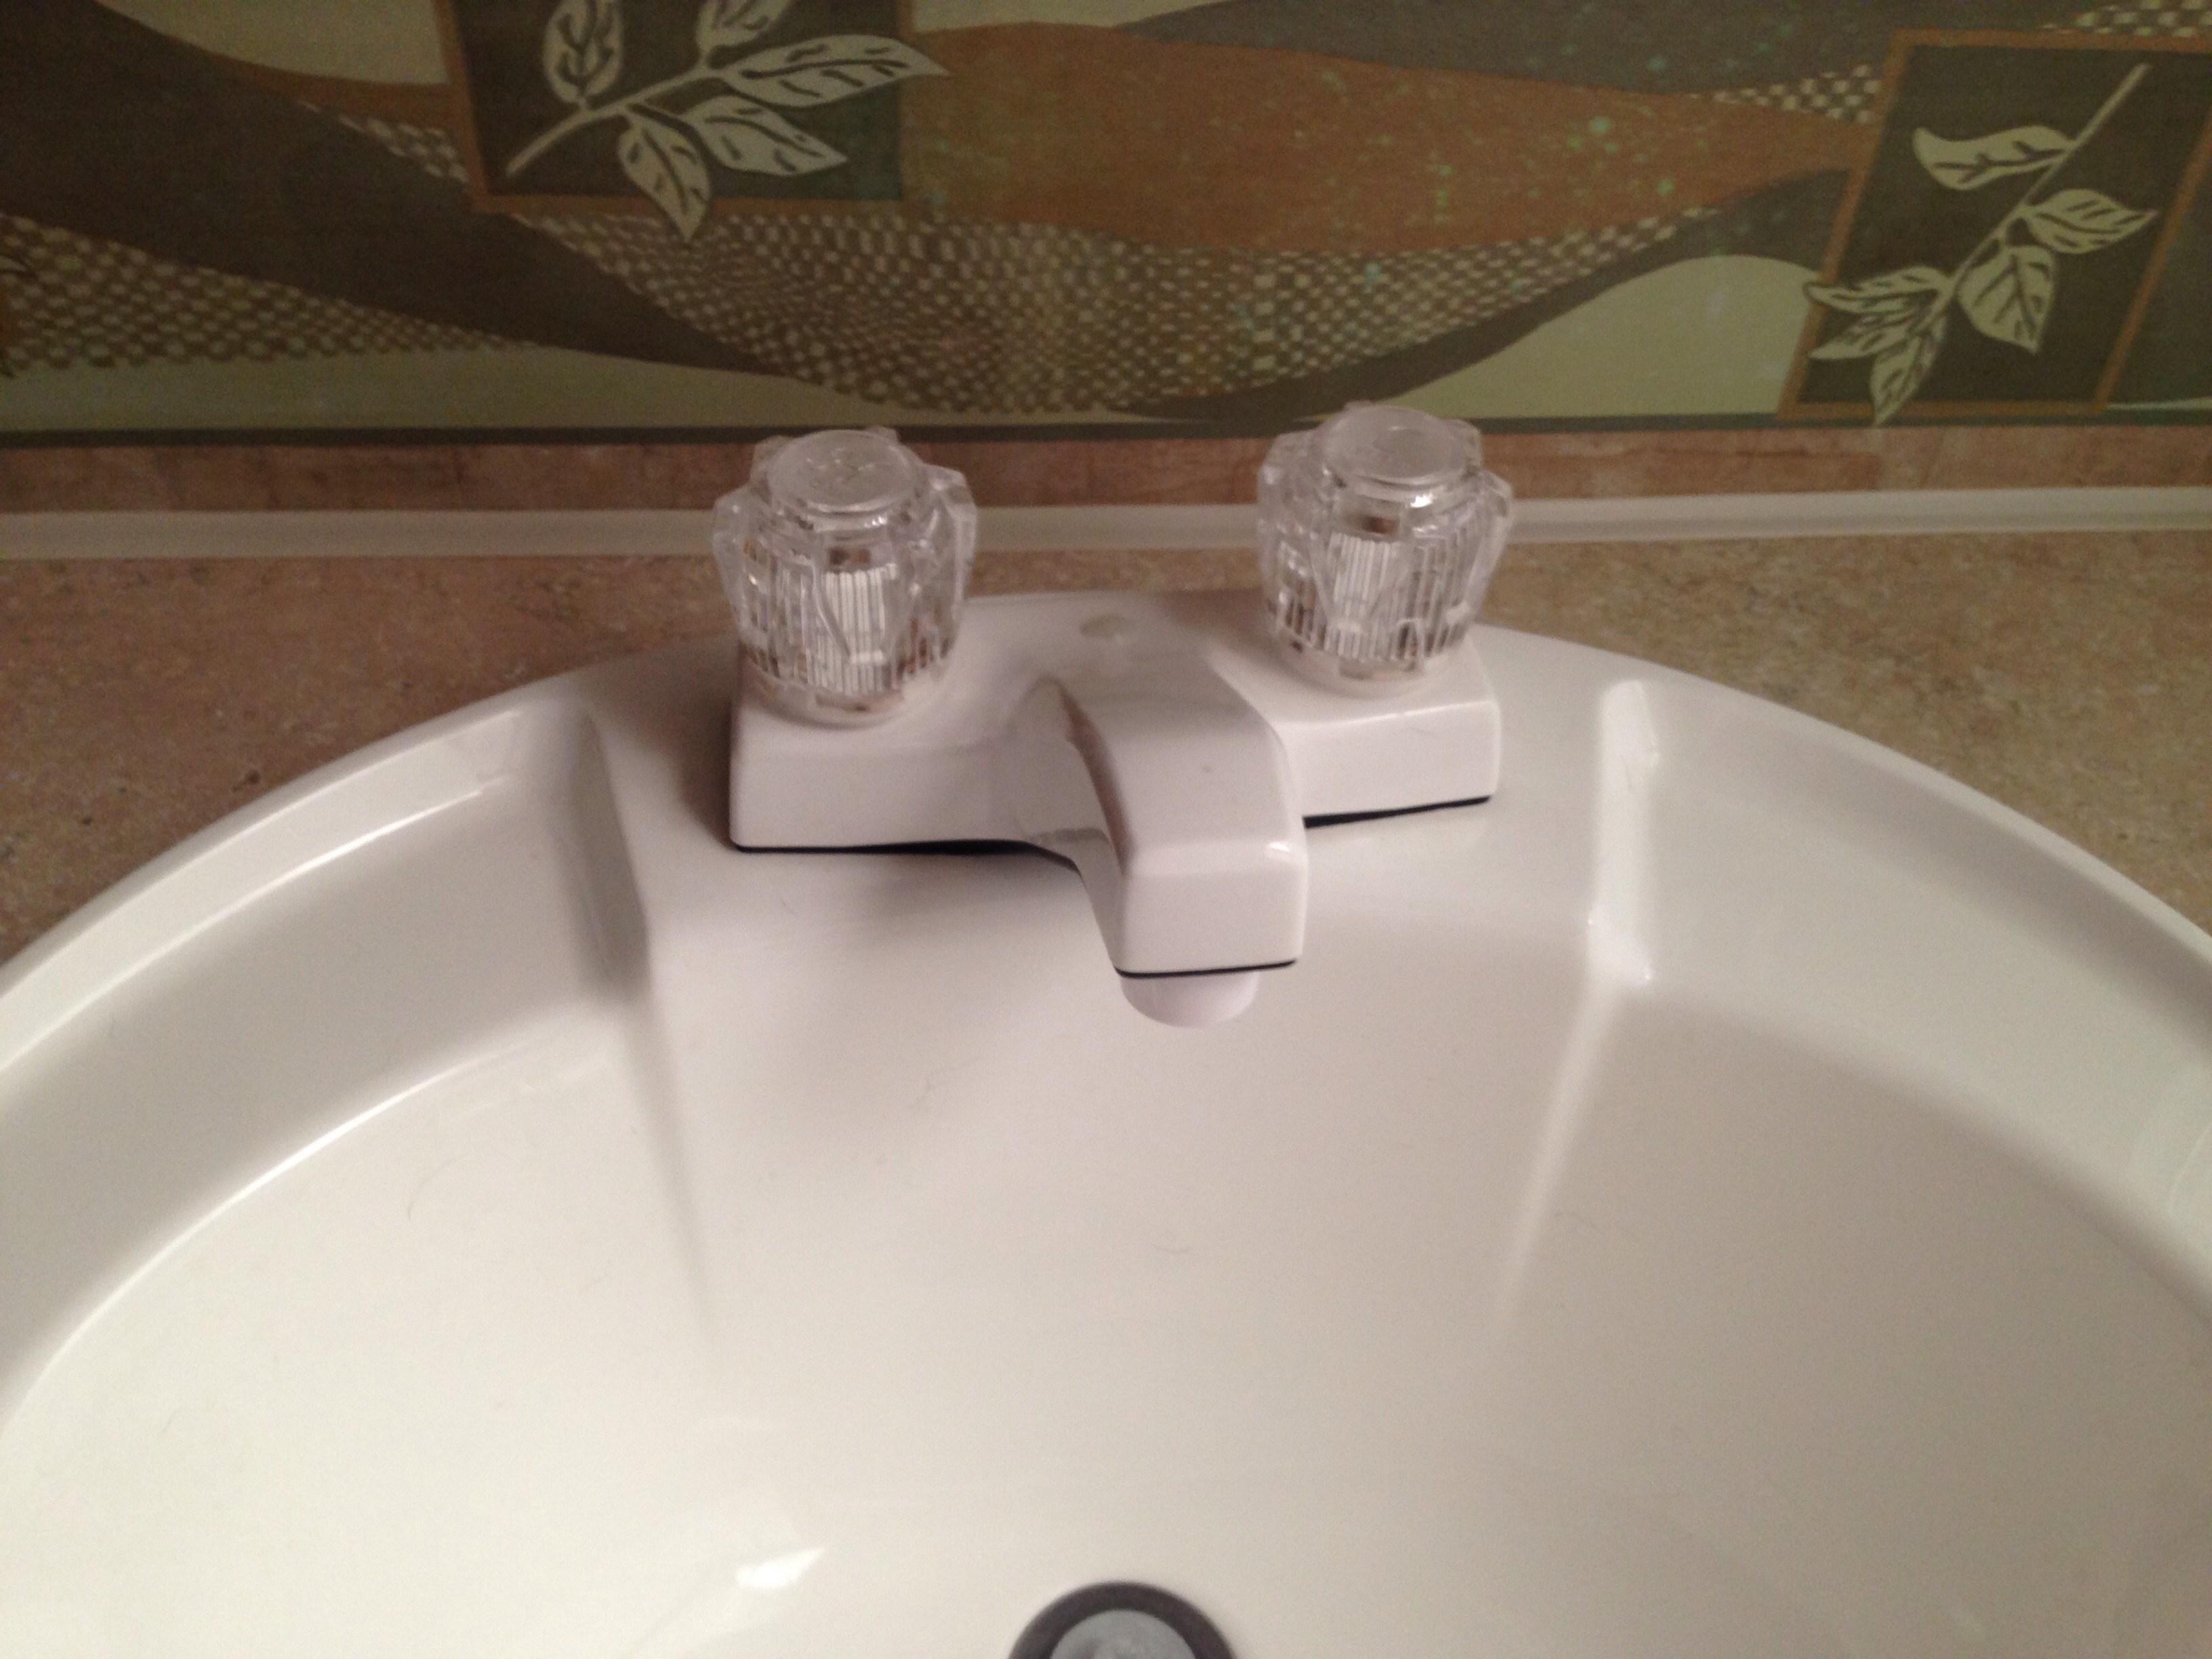 Rv bathroom sink replacement - Image